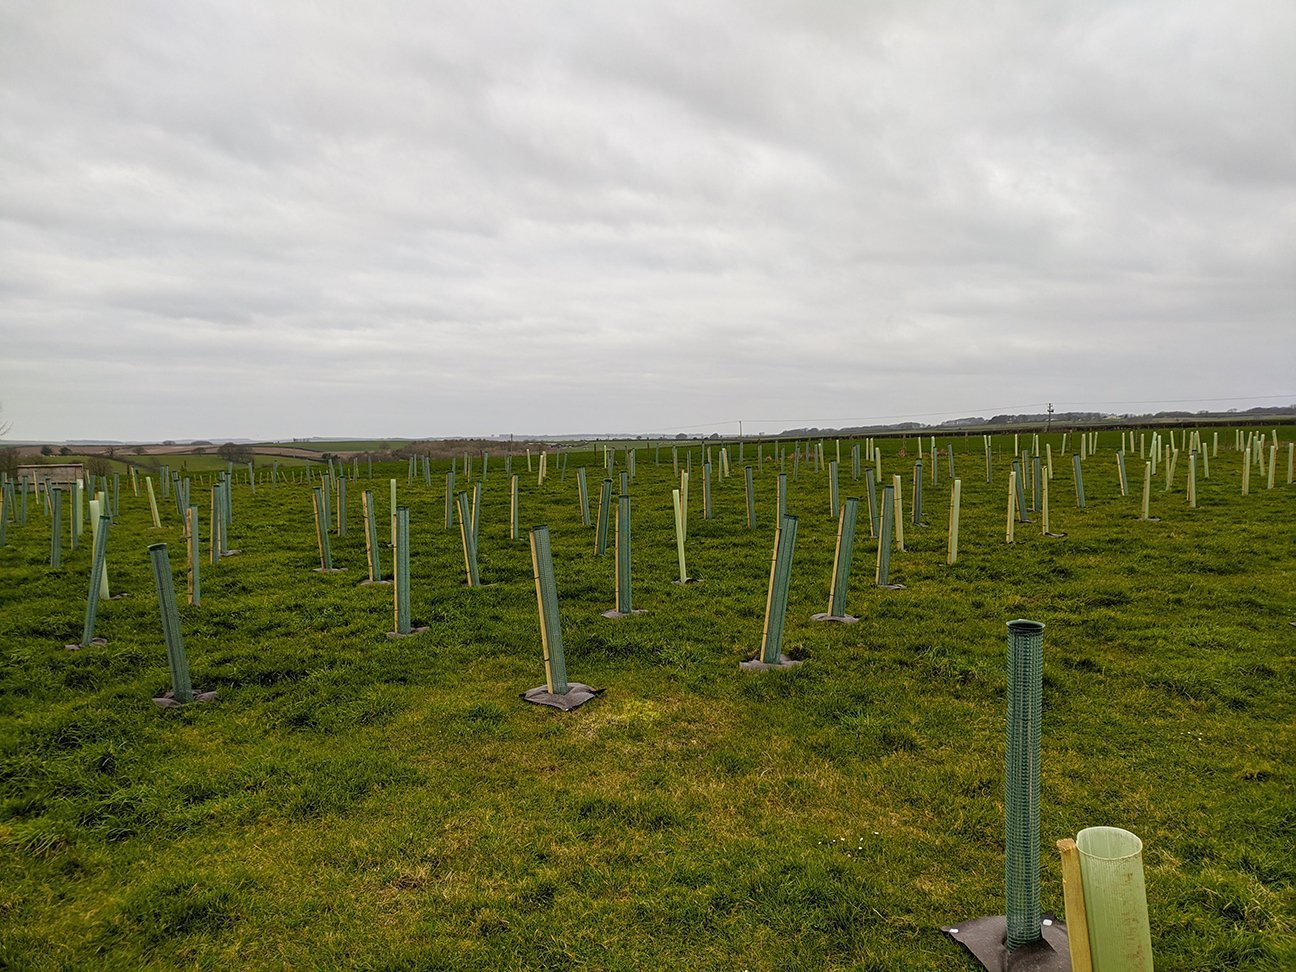 One Acre Wood  -  Dorset  -  Newly Planted Trees In Shelters 2021